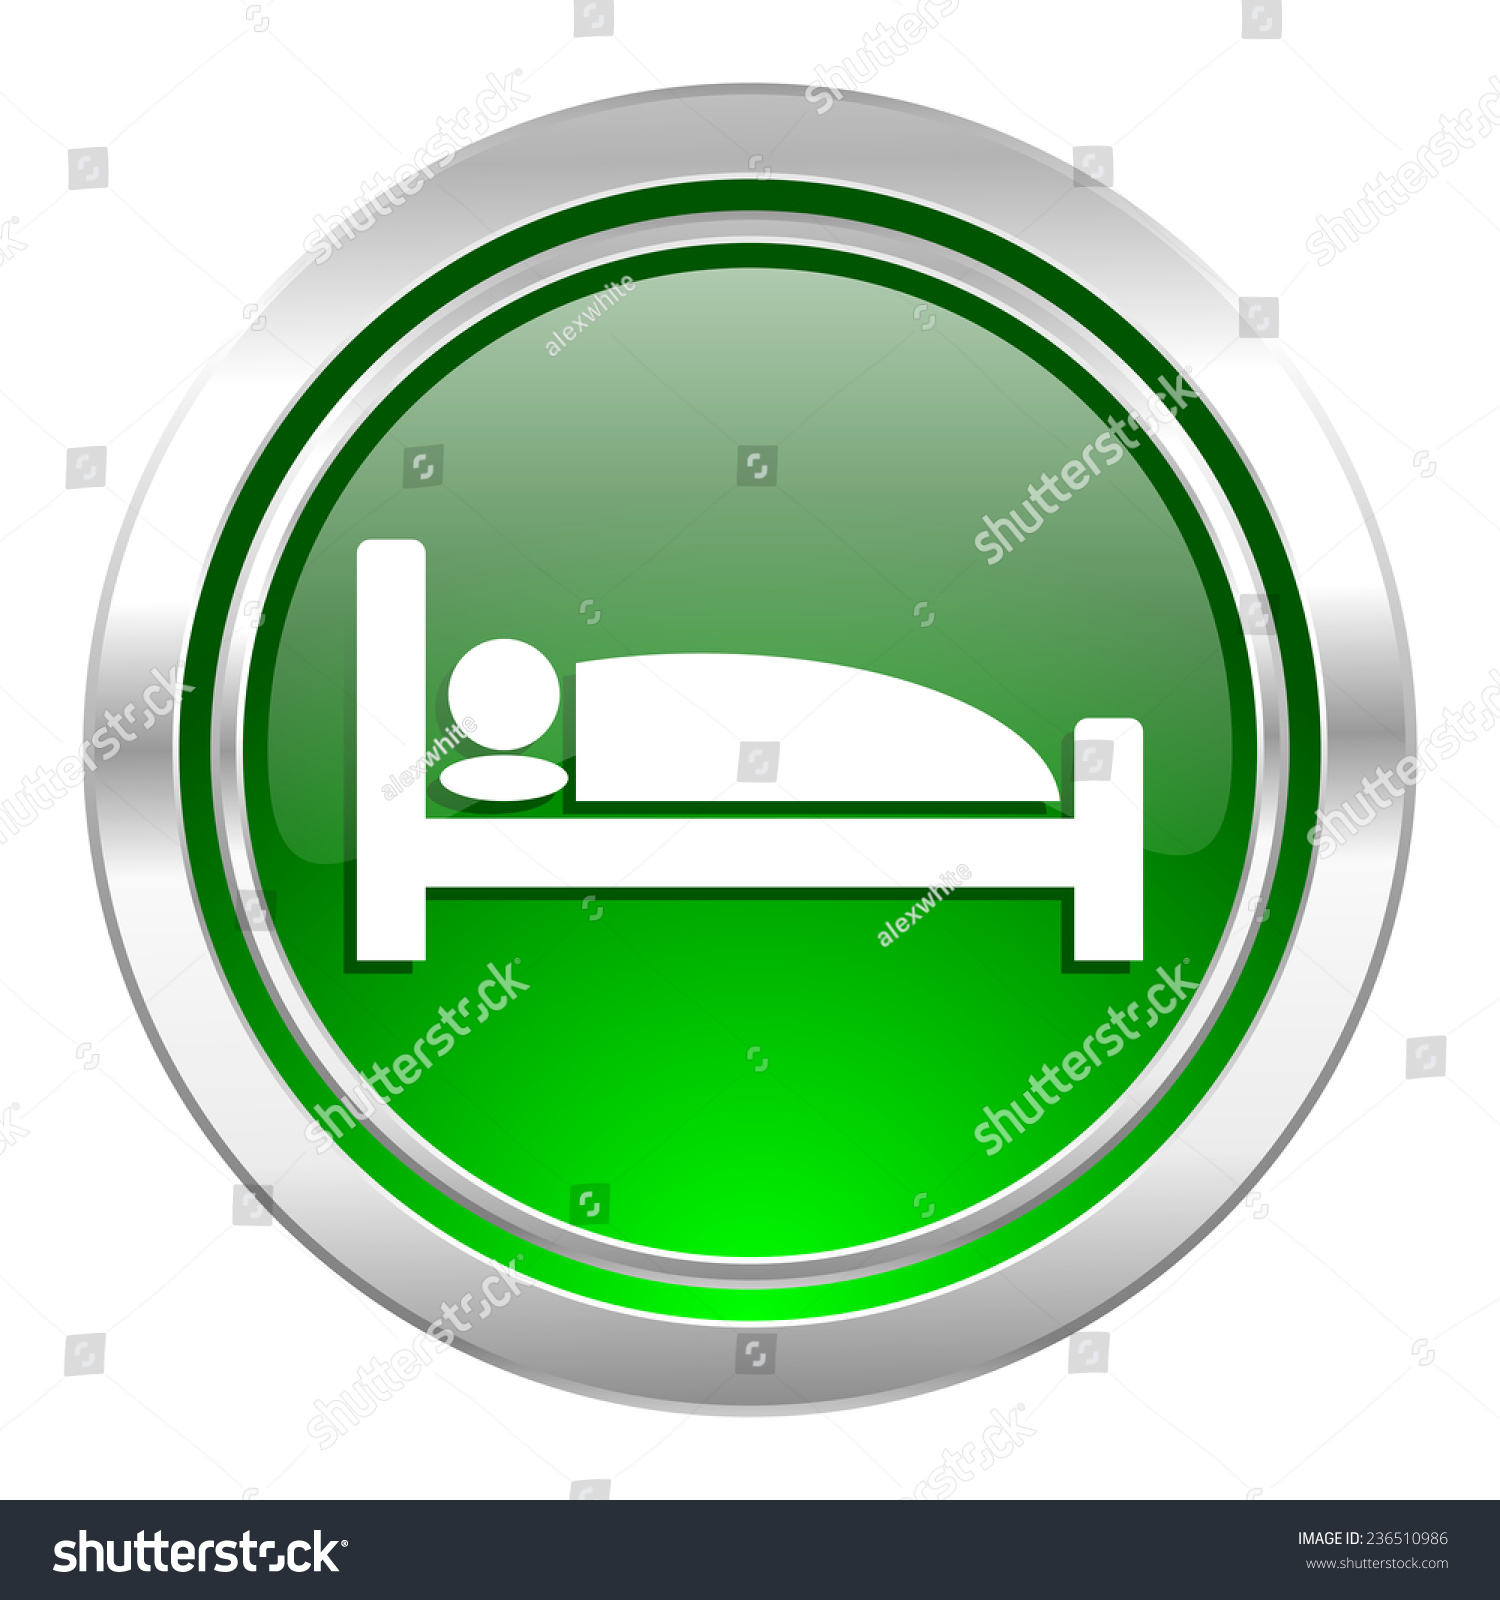 Hotel icon green button bed sign stock illustration - Green button ...